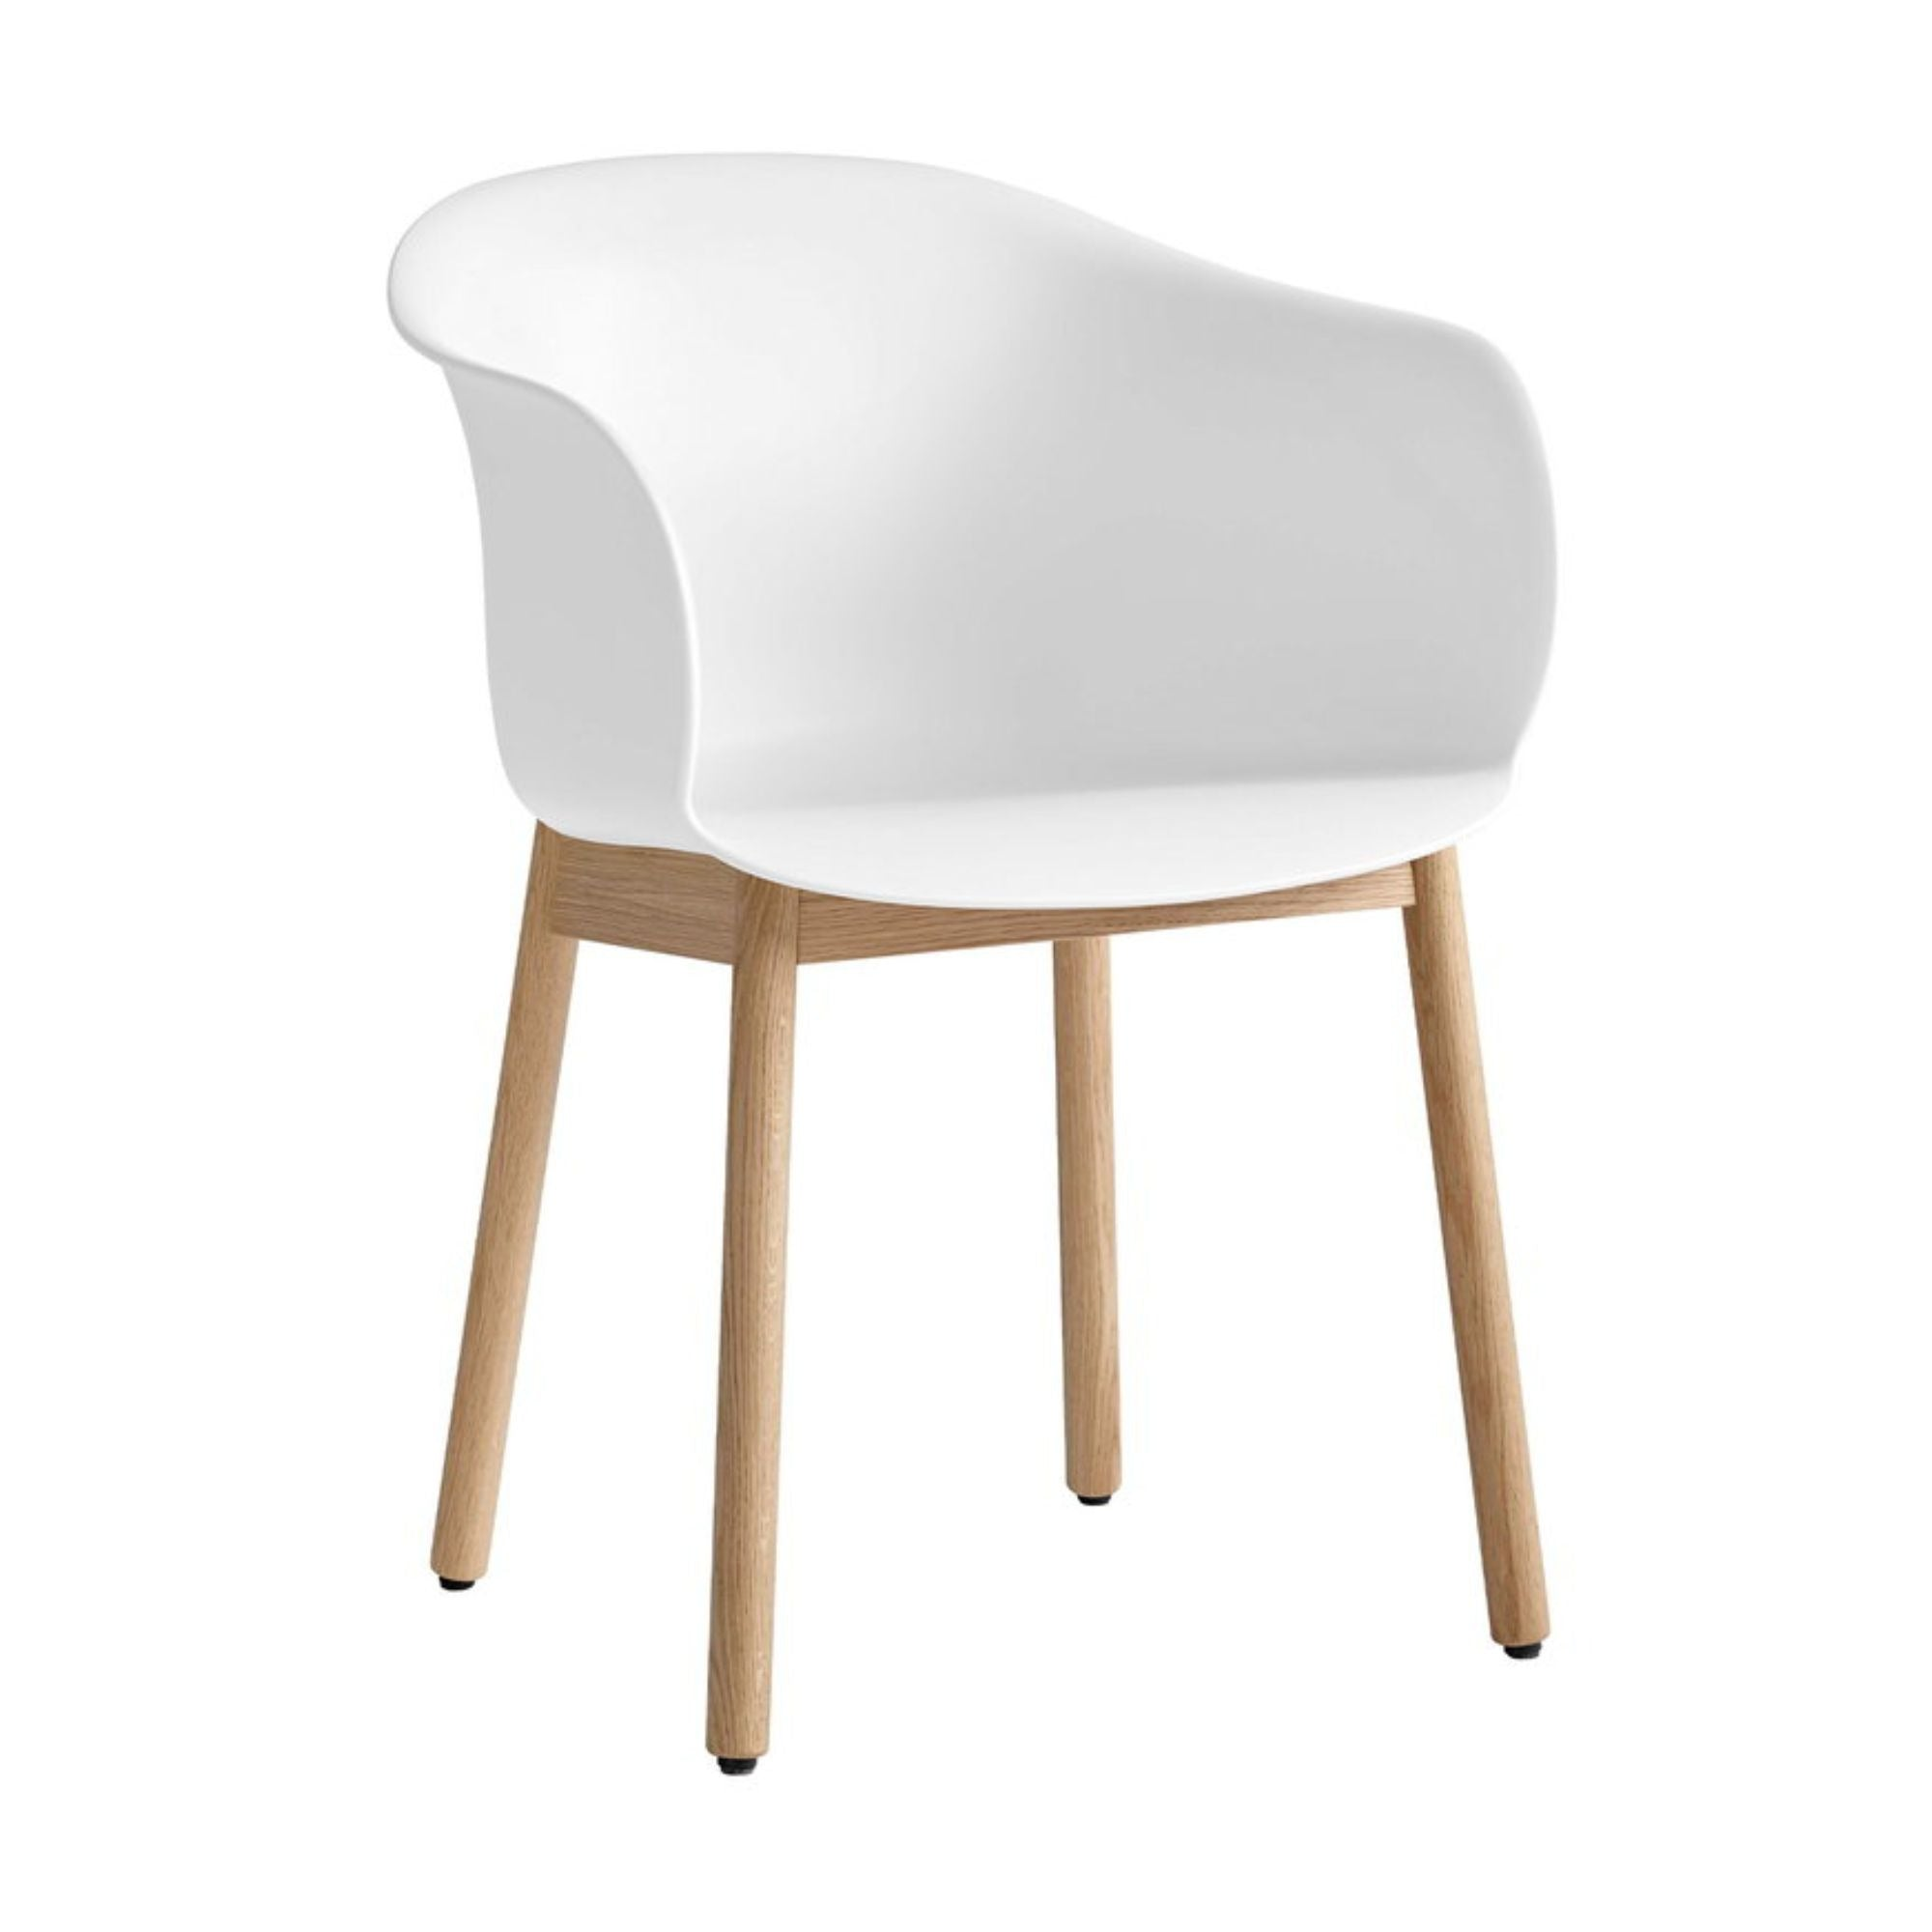 &Tradition JH30 Elefy Chair , White - Oak